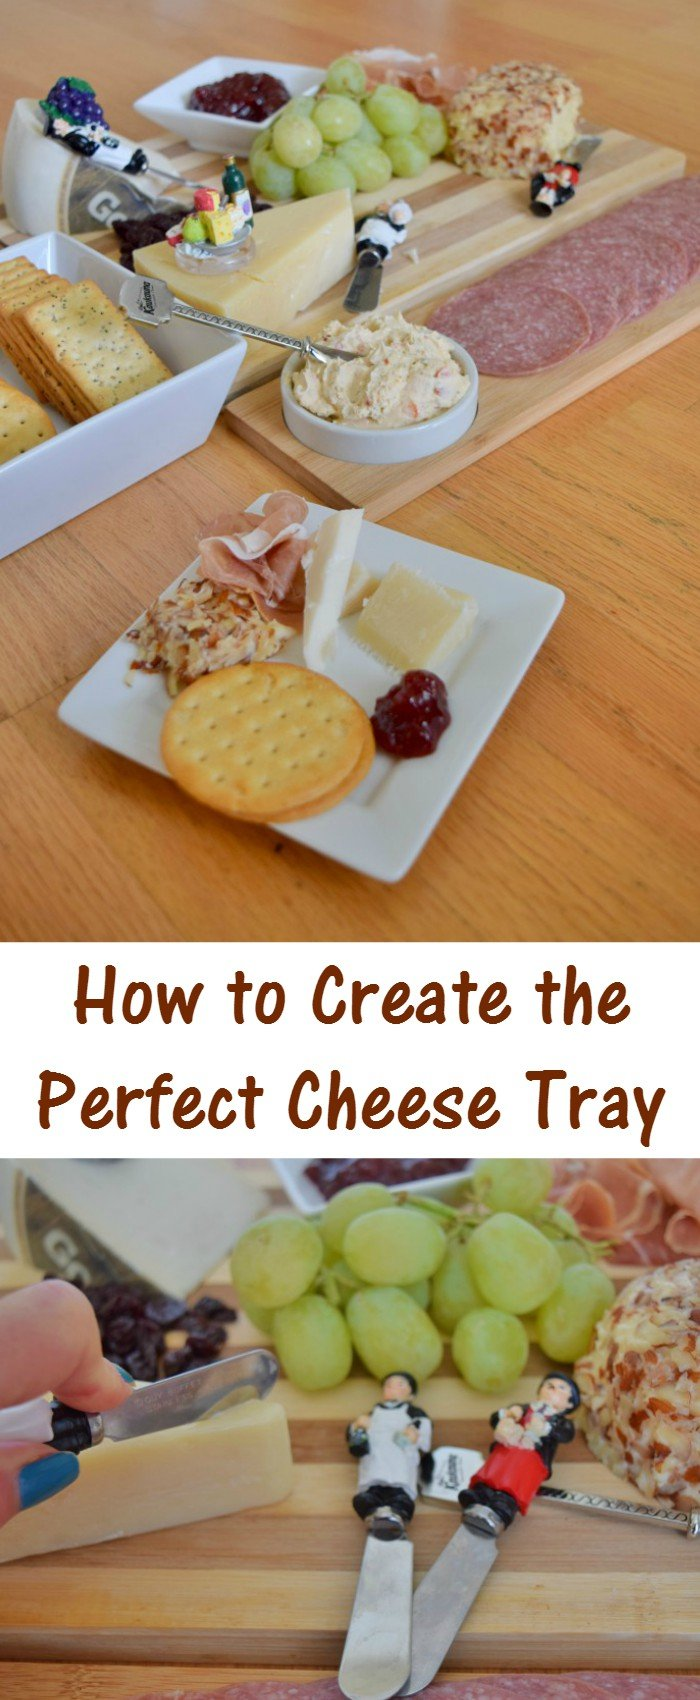 Do you know how to create a cheese platter? What are your best tips? & How To Create A Cheese Platter For Entertaining - Honest And Truly!